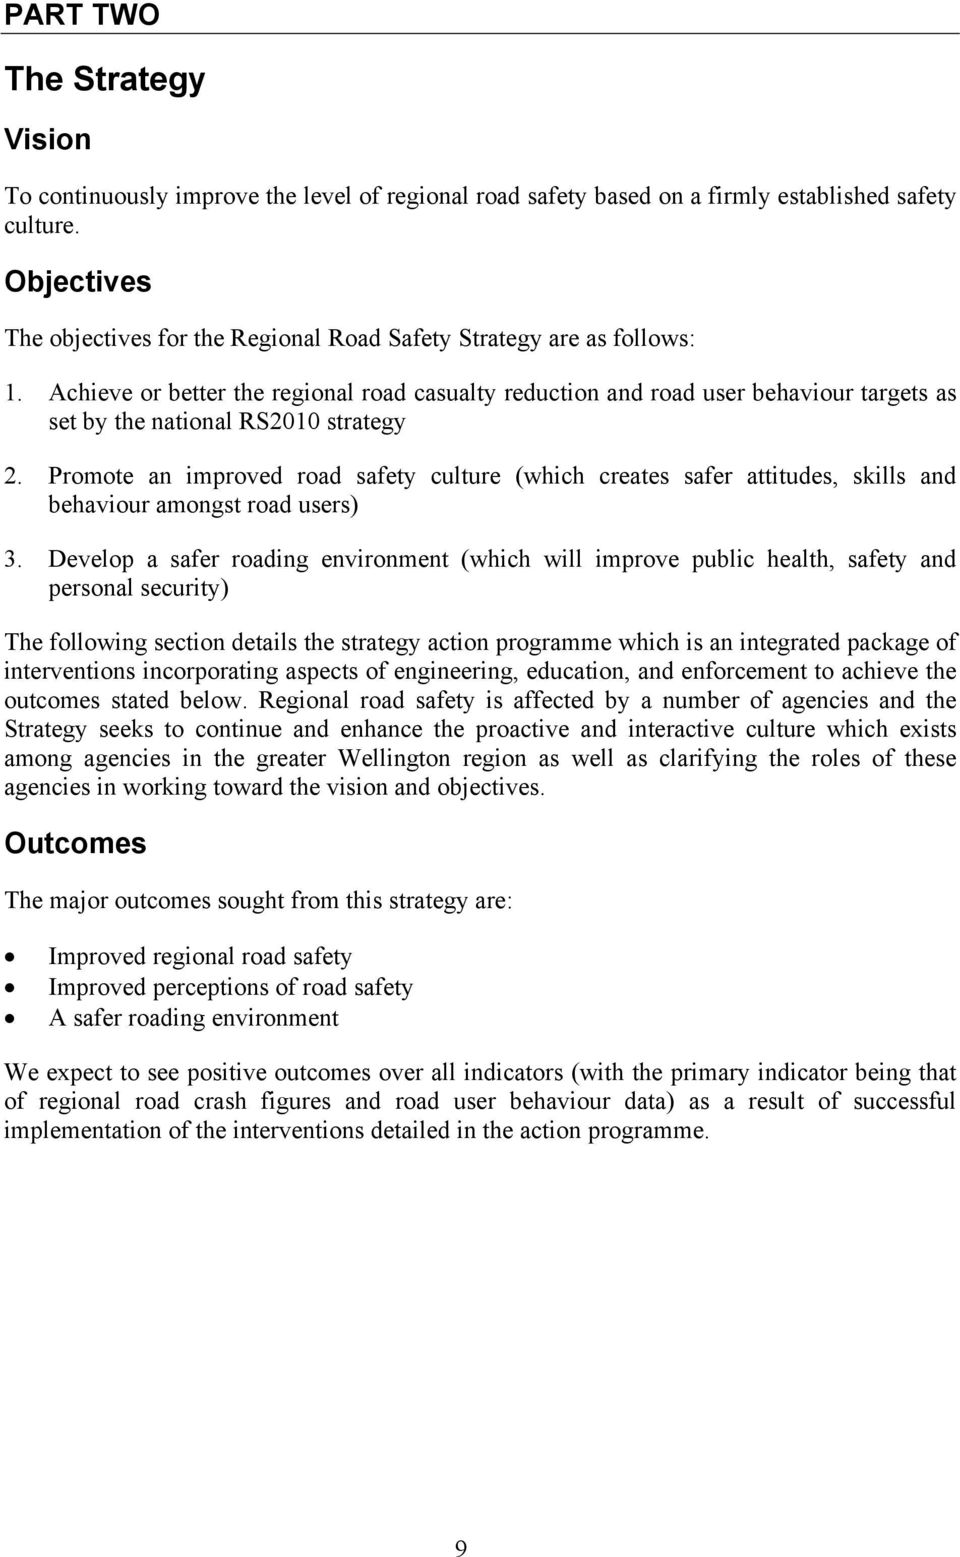 Achieve or better the regional road casualty reduction and road user behaviour targets as set by the national RS2010 strategy 2.